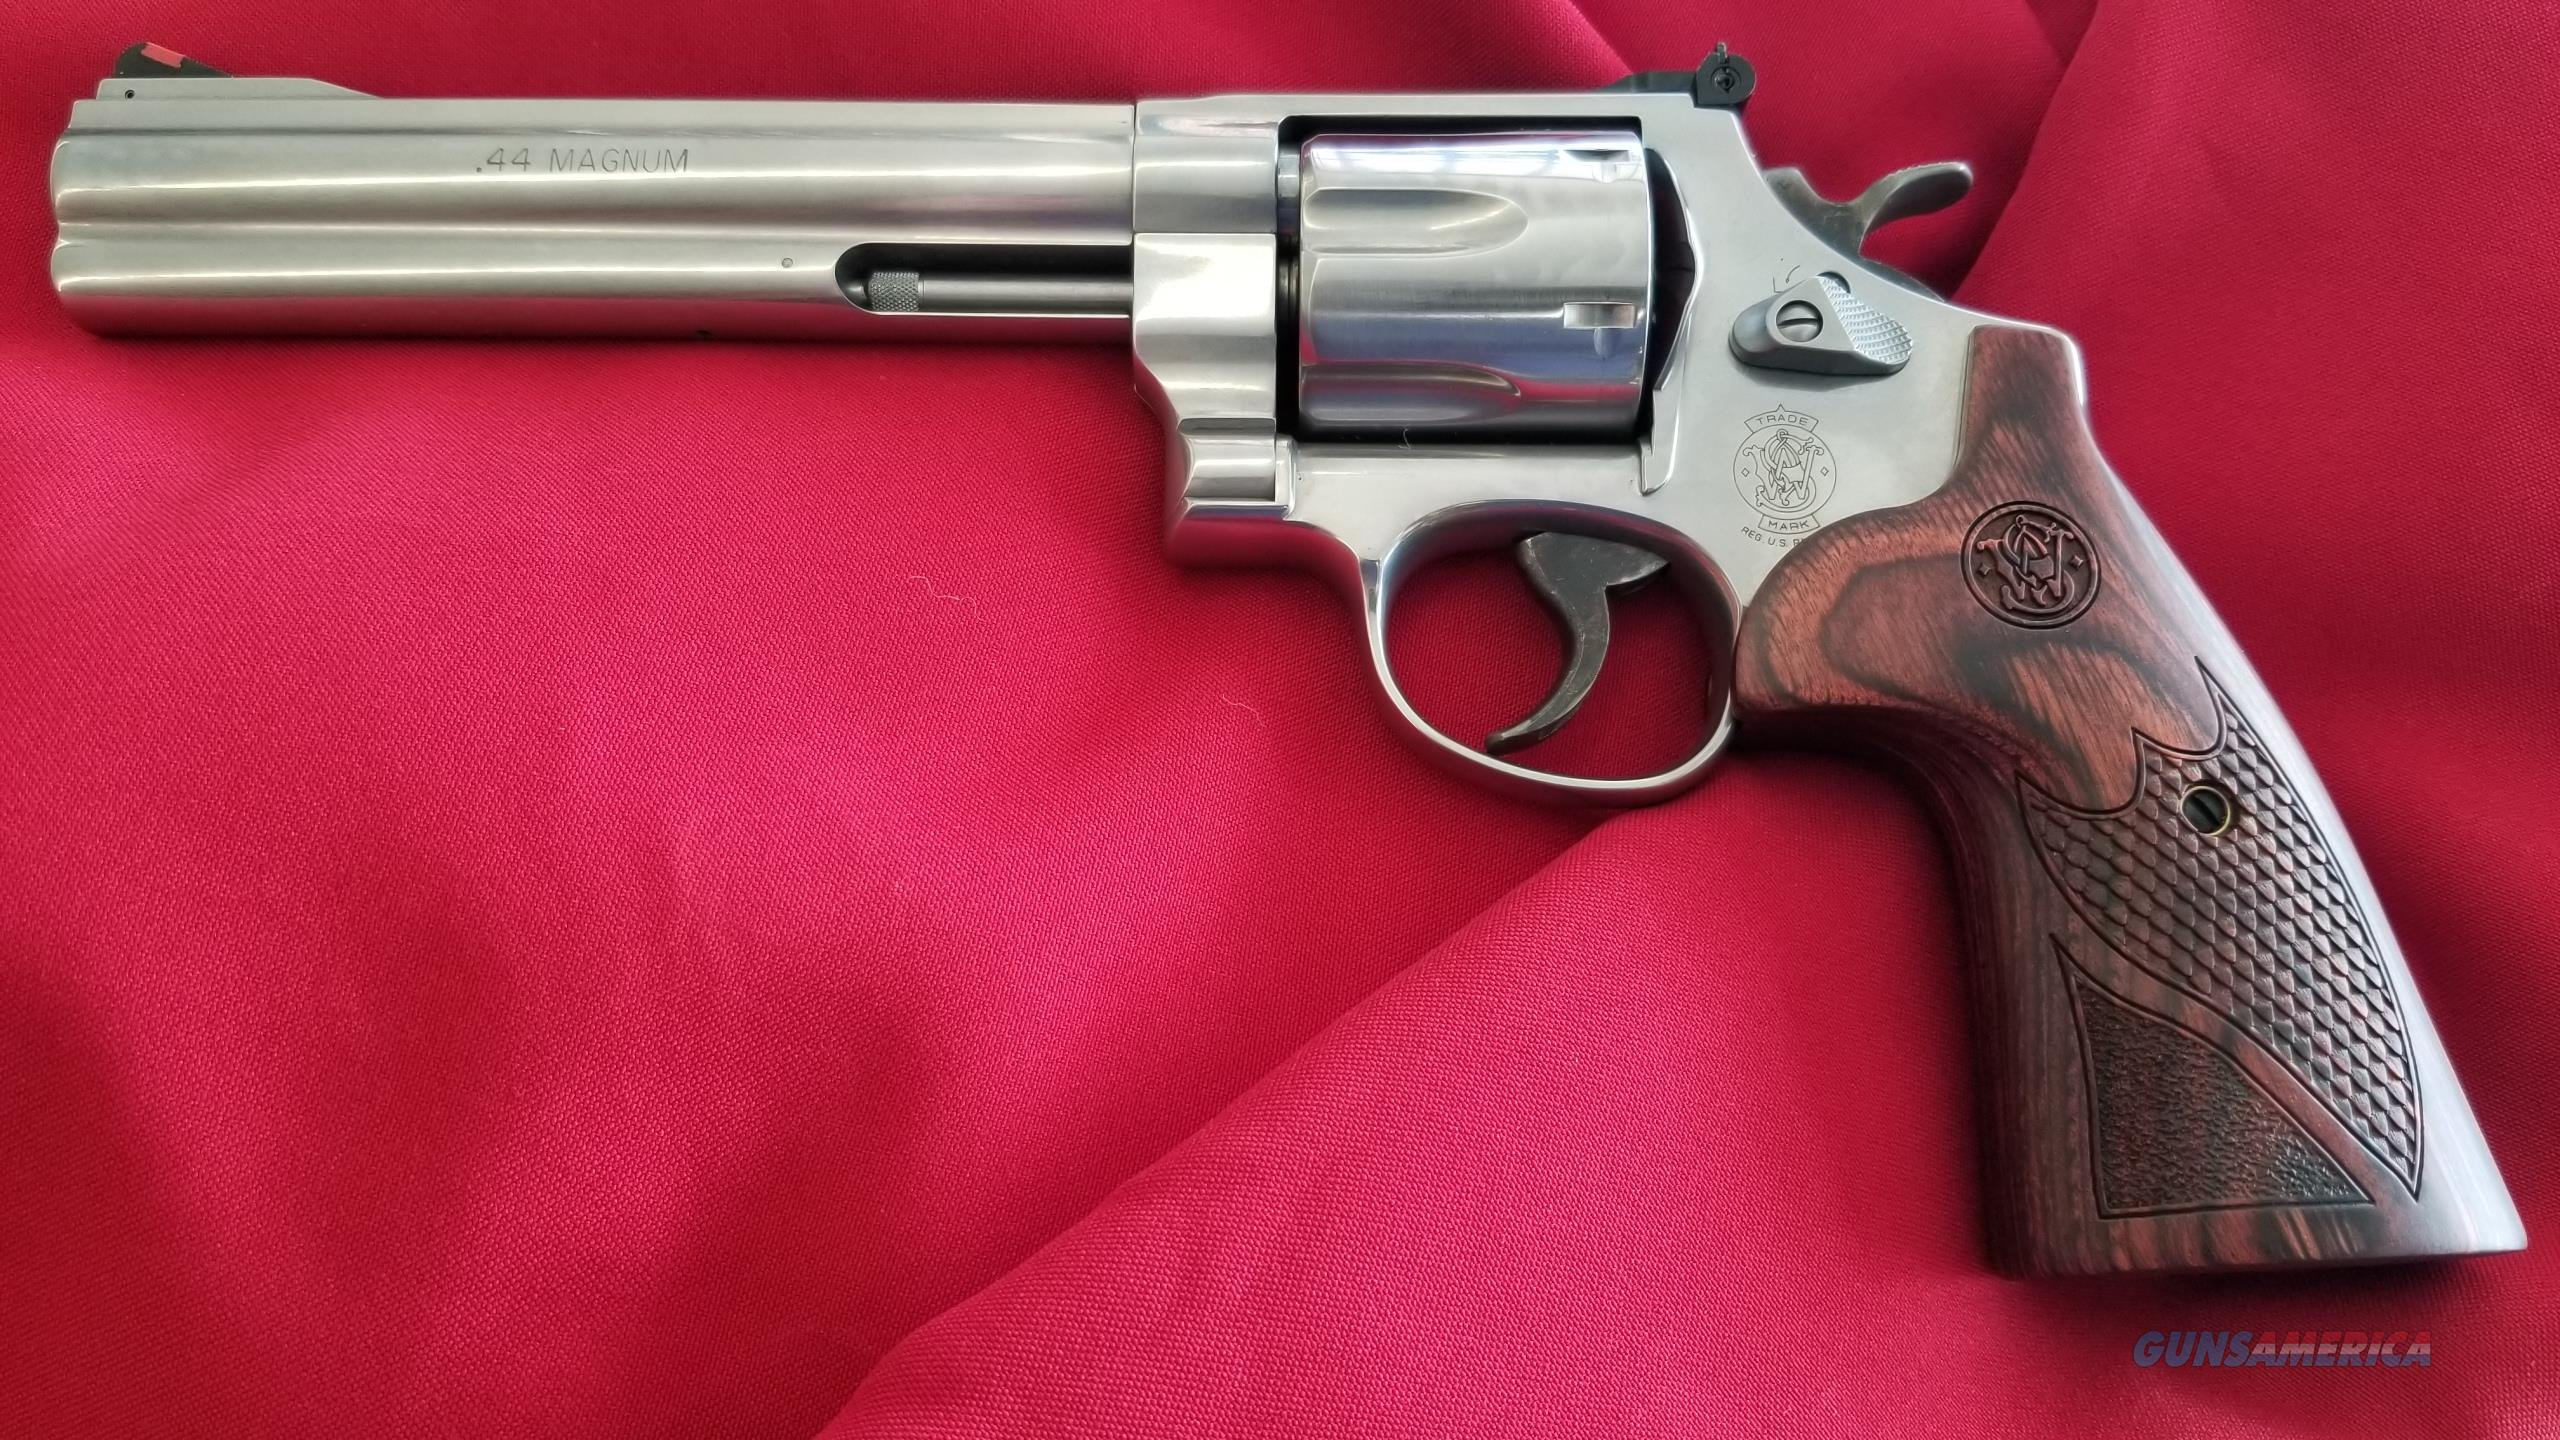 Smith & Wesson 629 Deluxe 6.5 Inch Barrel in 44 Magnum  Guns > Pistols > Smith & Wesson Revolvers > Model 629